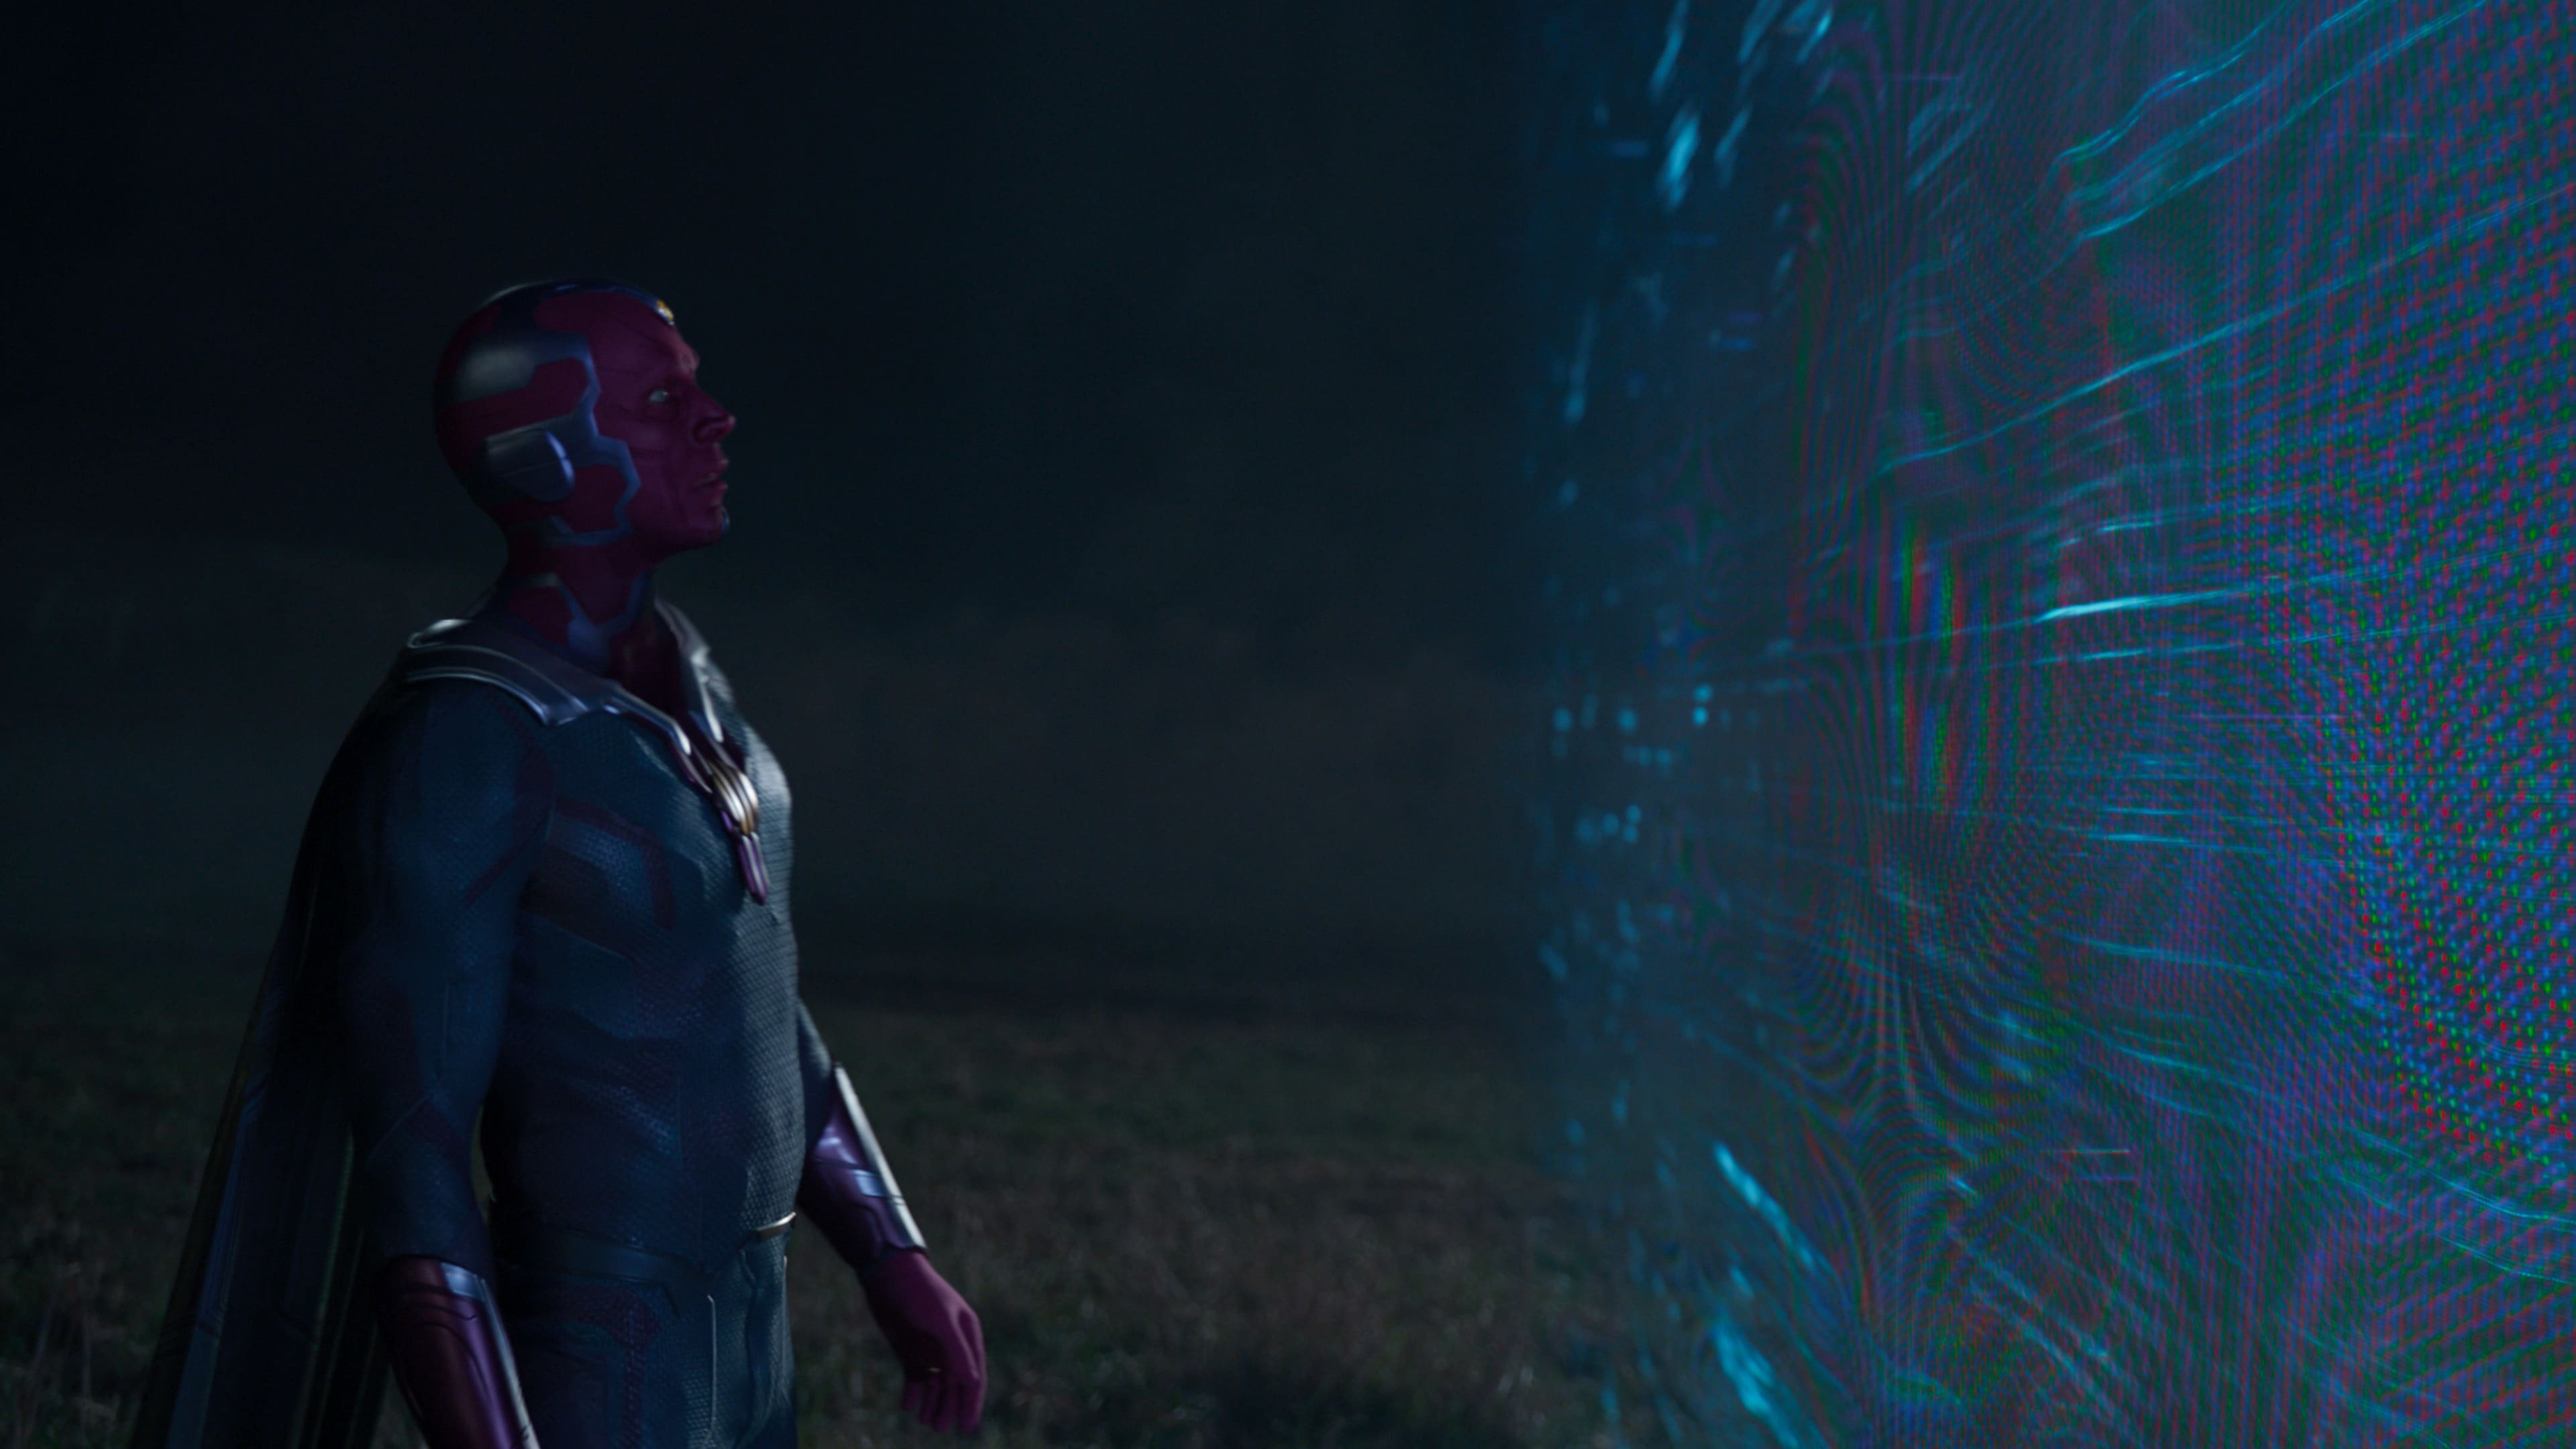 Paul Bettany as Vision in Marvel Studios' WANDAVISION exclusively on Disney+. Photo courtesy of Marvel Studios. ©Marvel Studios 2021. All Rights Reserved.